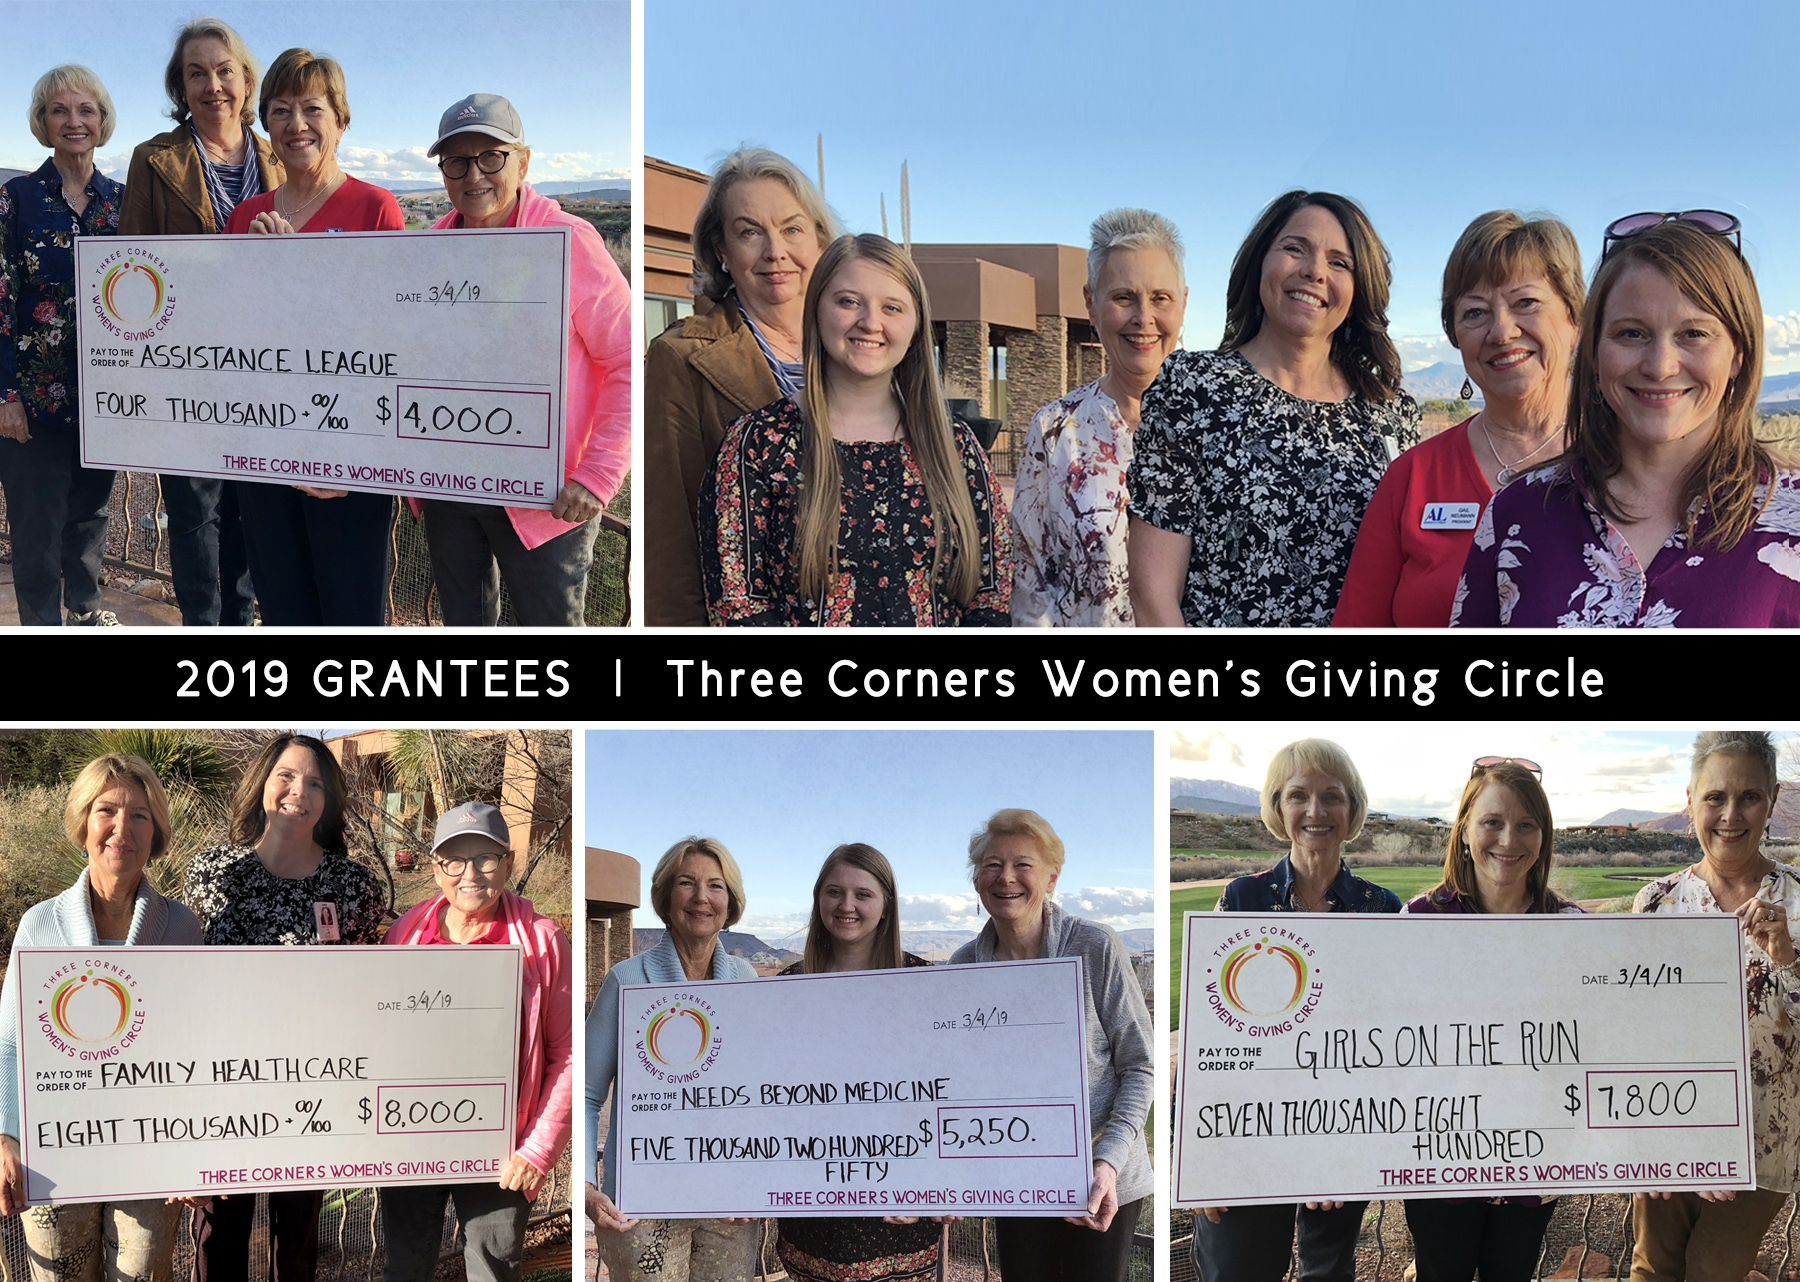 Three Corners Women's Giving Circle